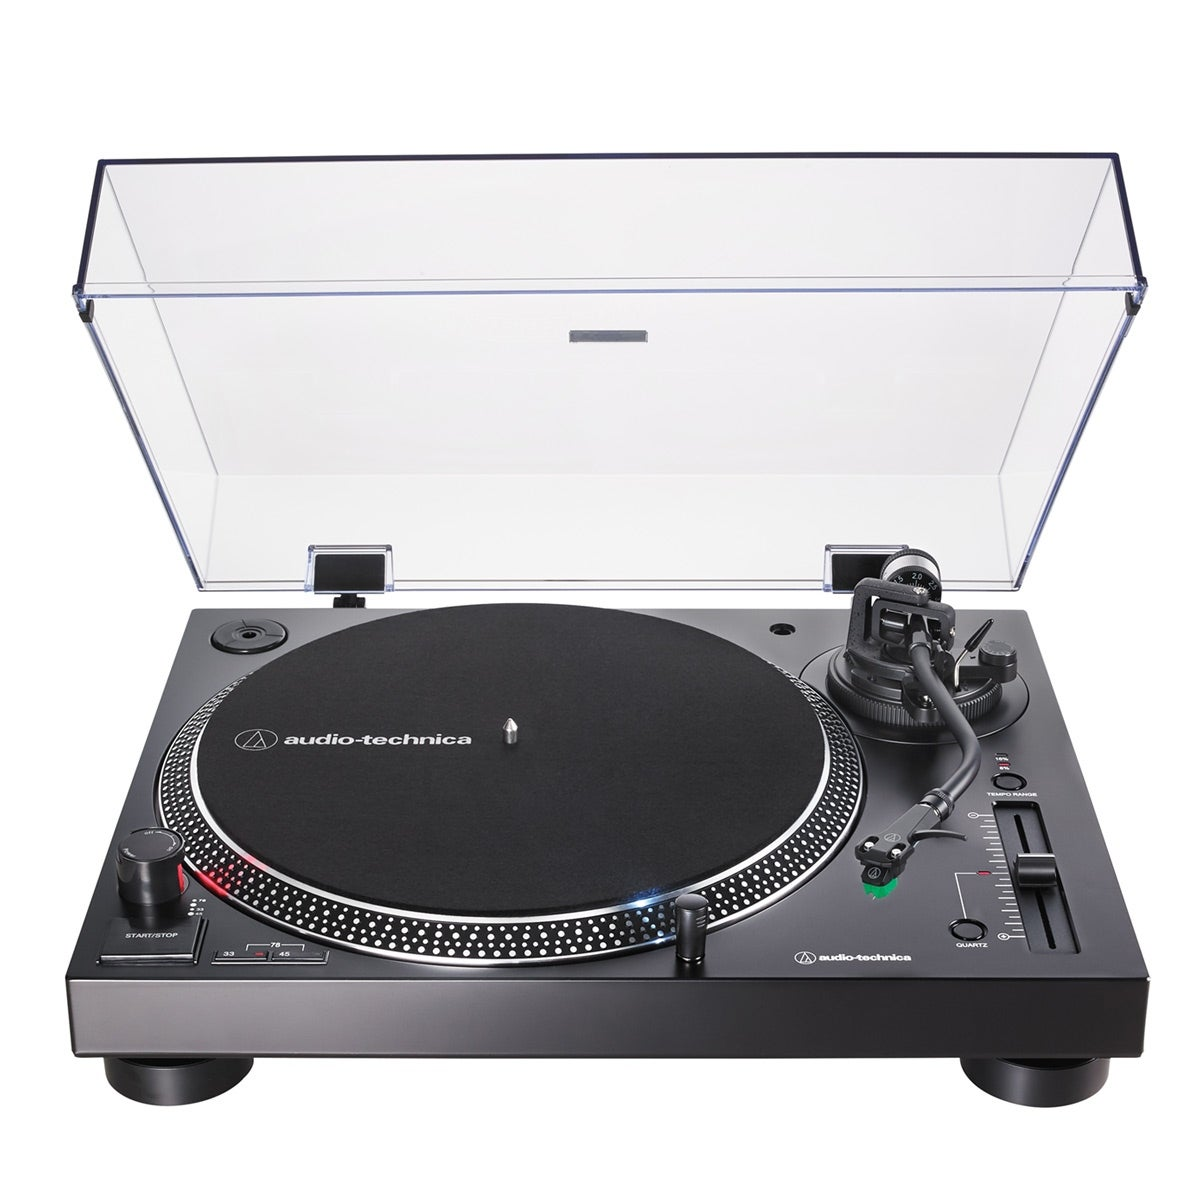 AudioTechnica AT LP120XUSB Direct Drive 3 Speed Turntable with USB Output